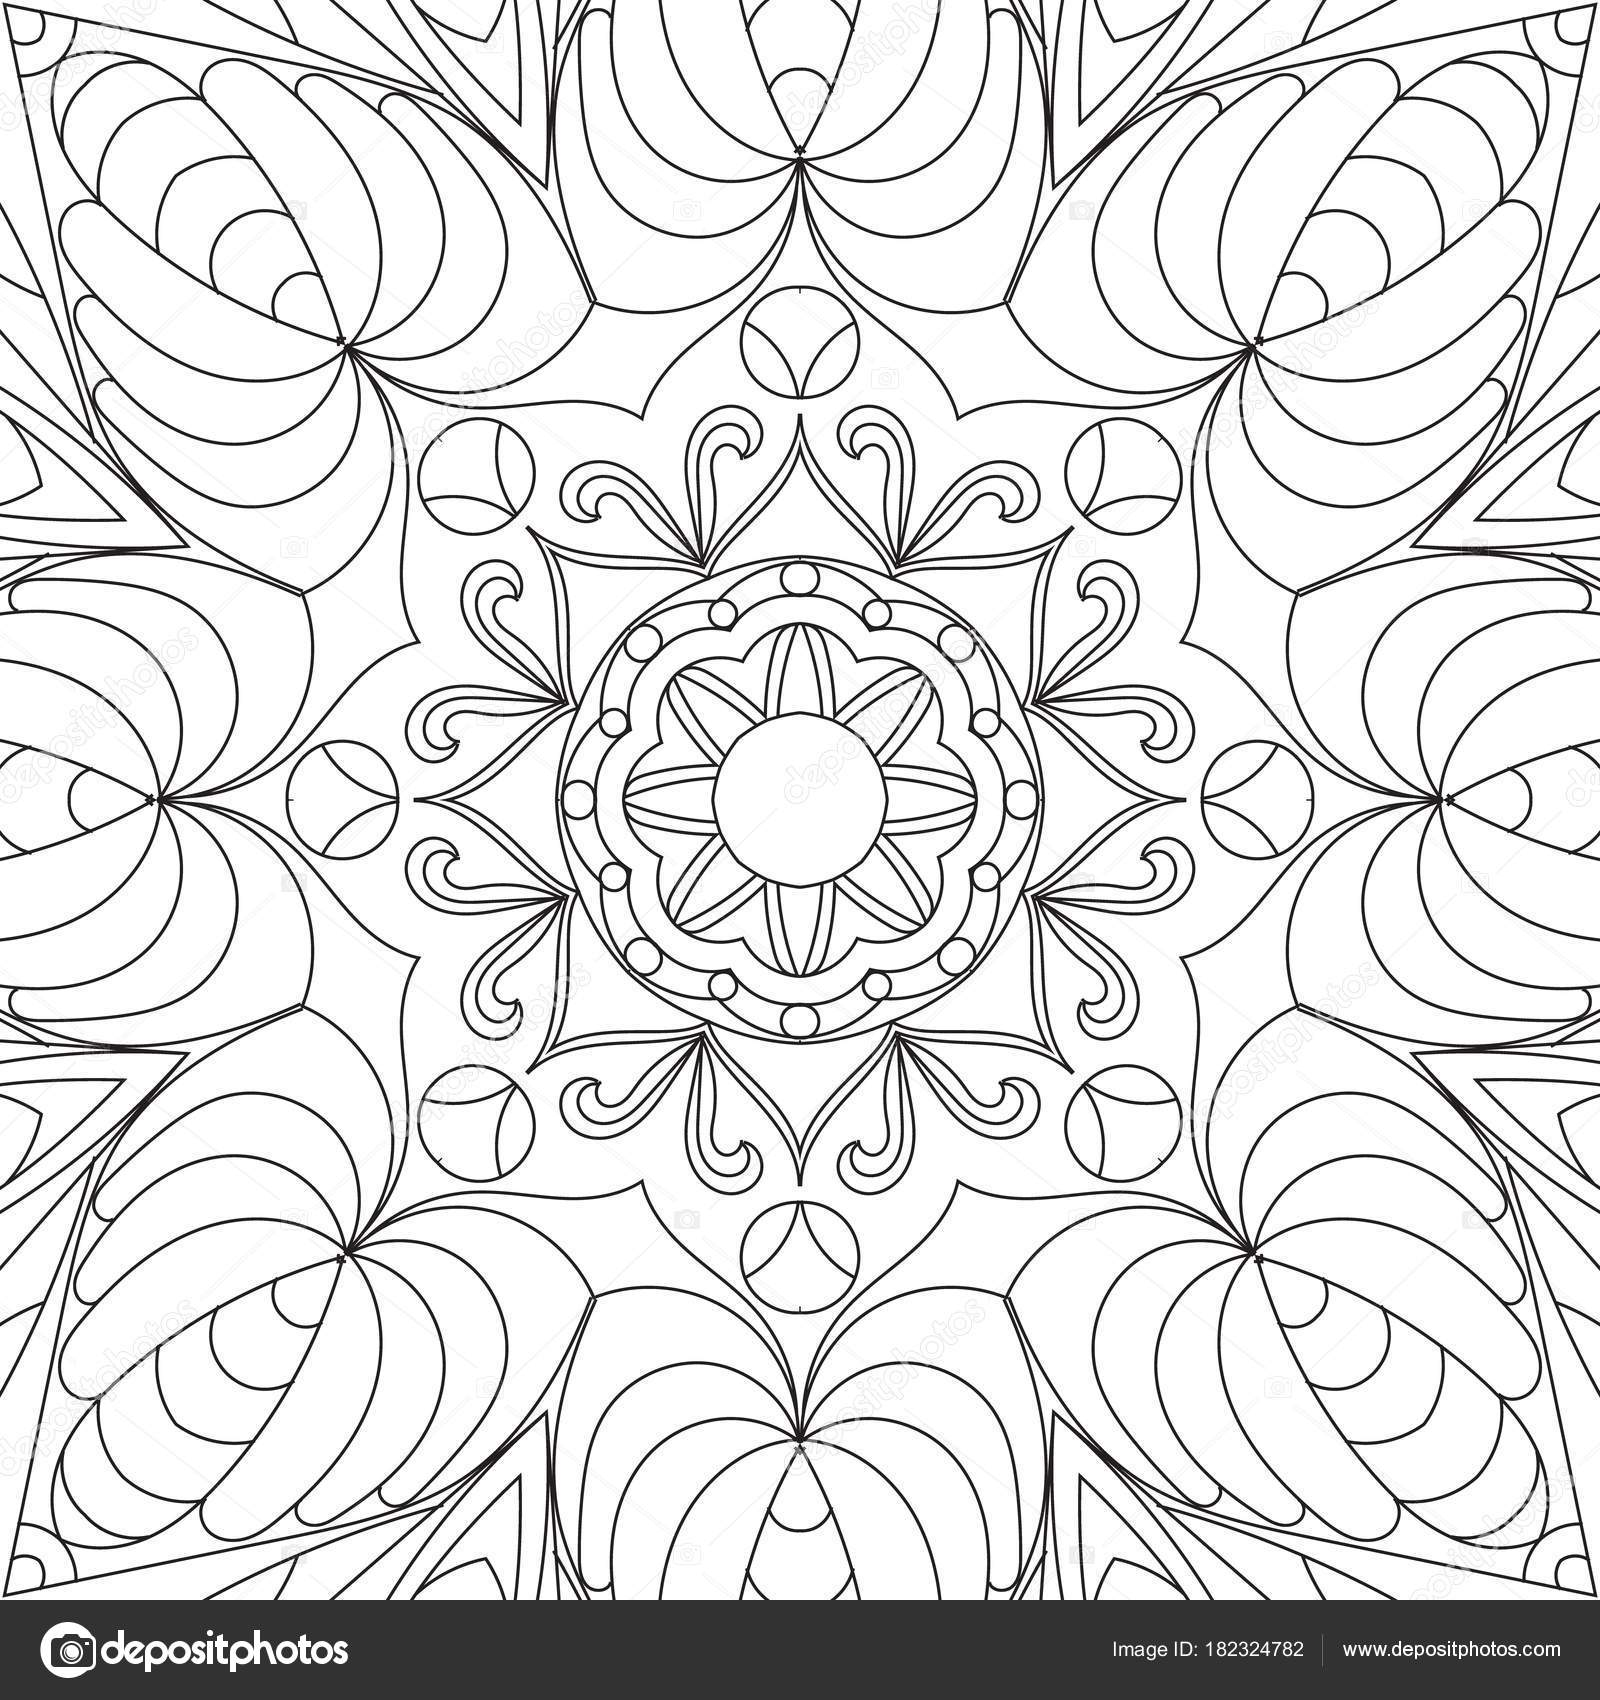 Flower Rectangular Mandala For Adults Coloring Book Page Design